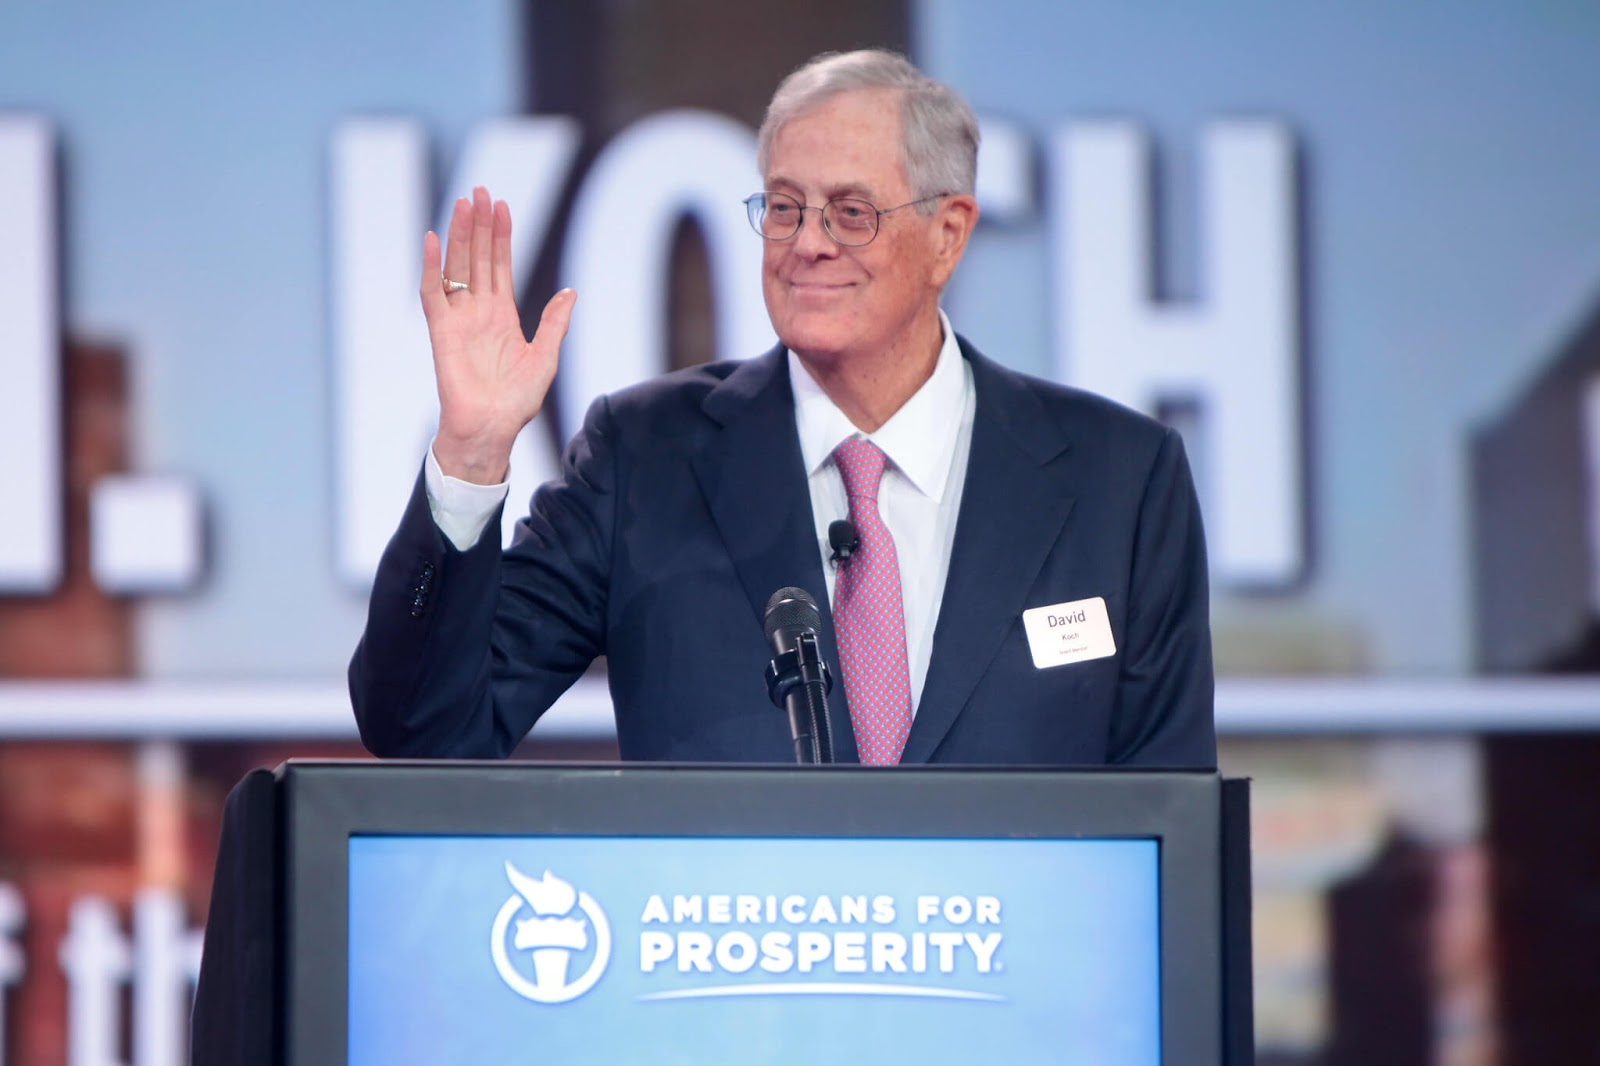 David Koch, Billionaire Conservative Activist Dies At 79, He Was Known For His Political Influence.